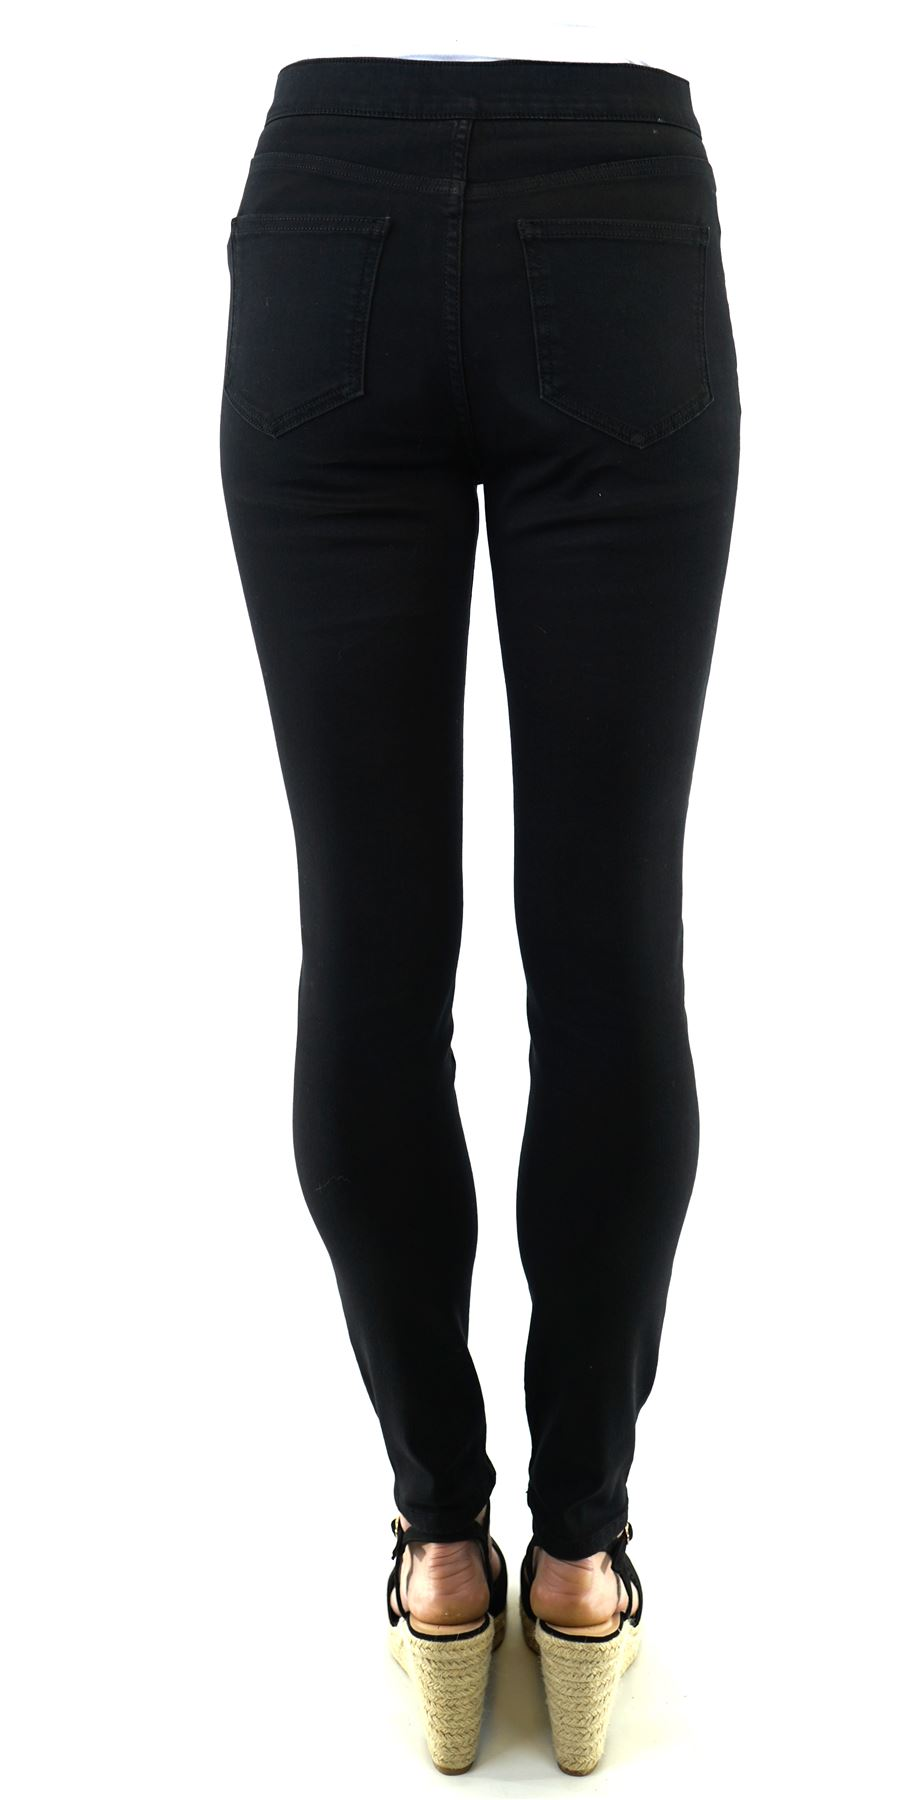 thumbnail 55 - Karen Millen Womens Casual Black Denim Button Jegging Ladies Jean Stylish Gift